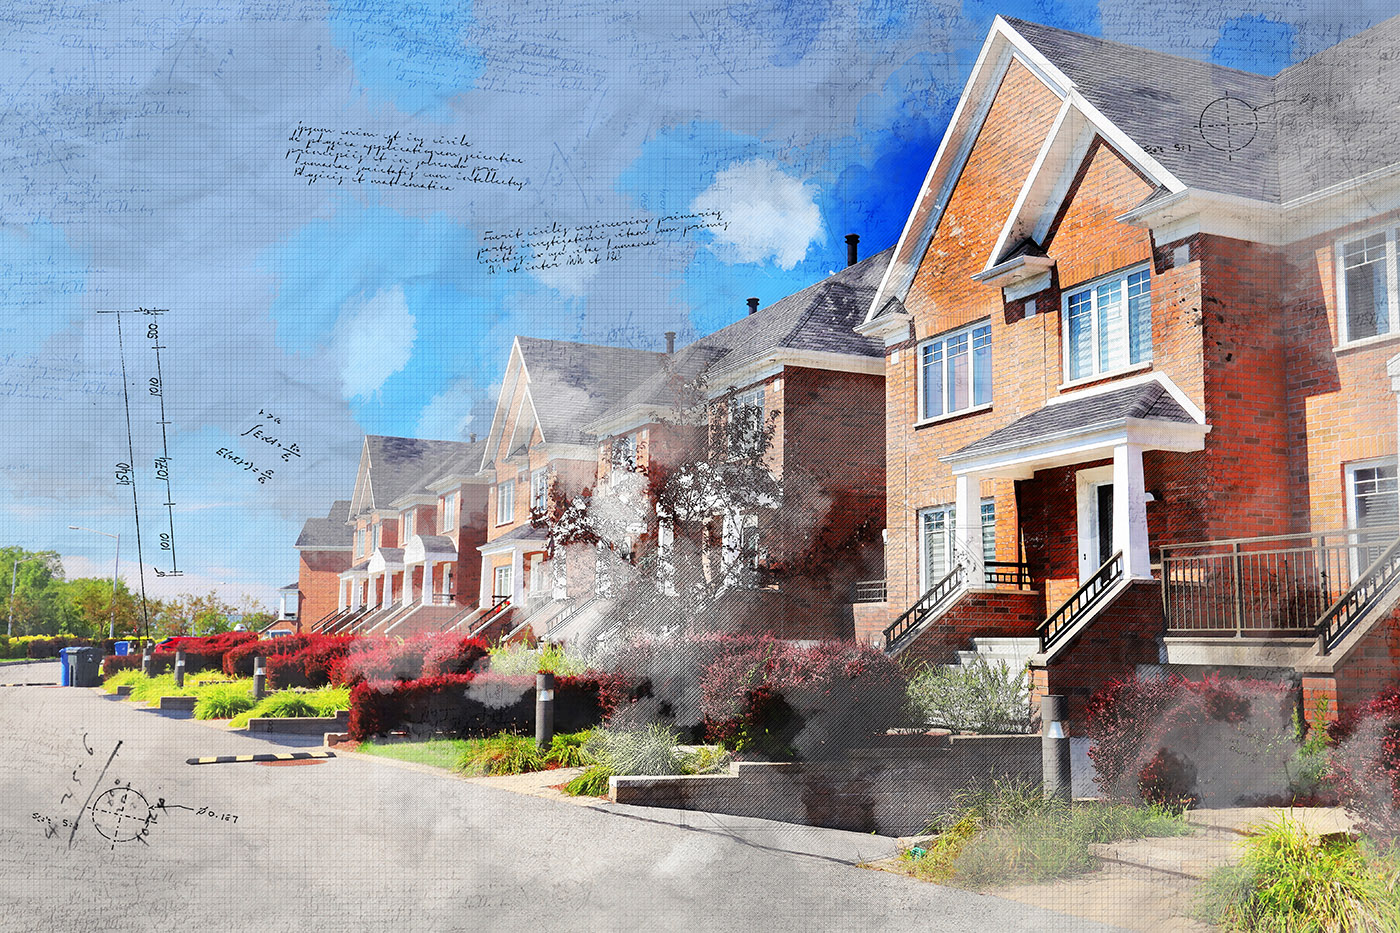 Colorful Urban Houses Sketch Image - Stock Photography